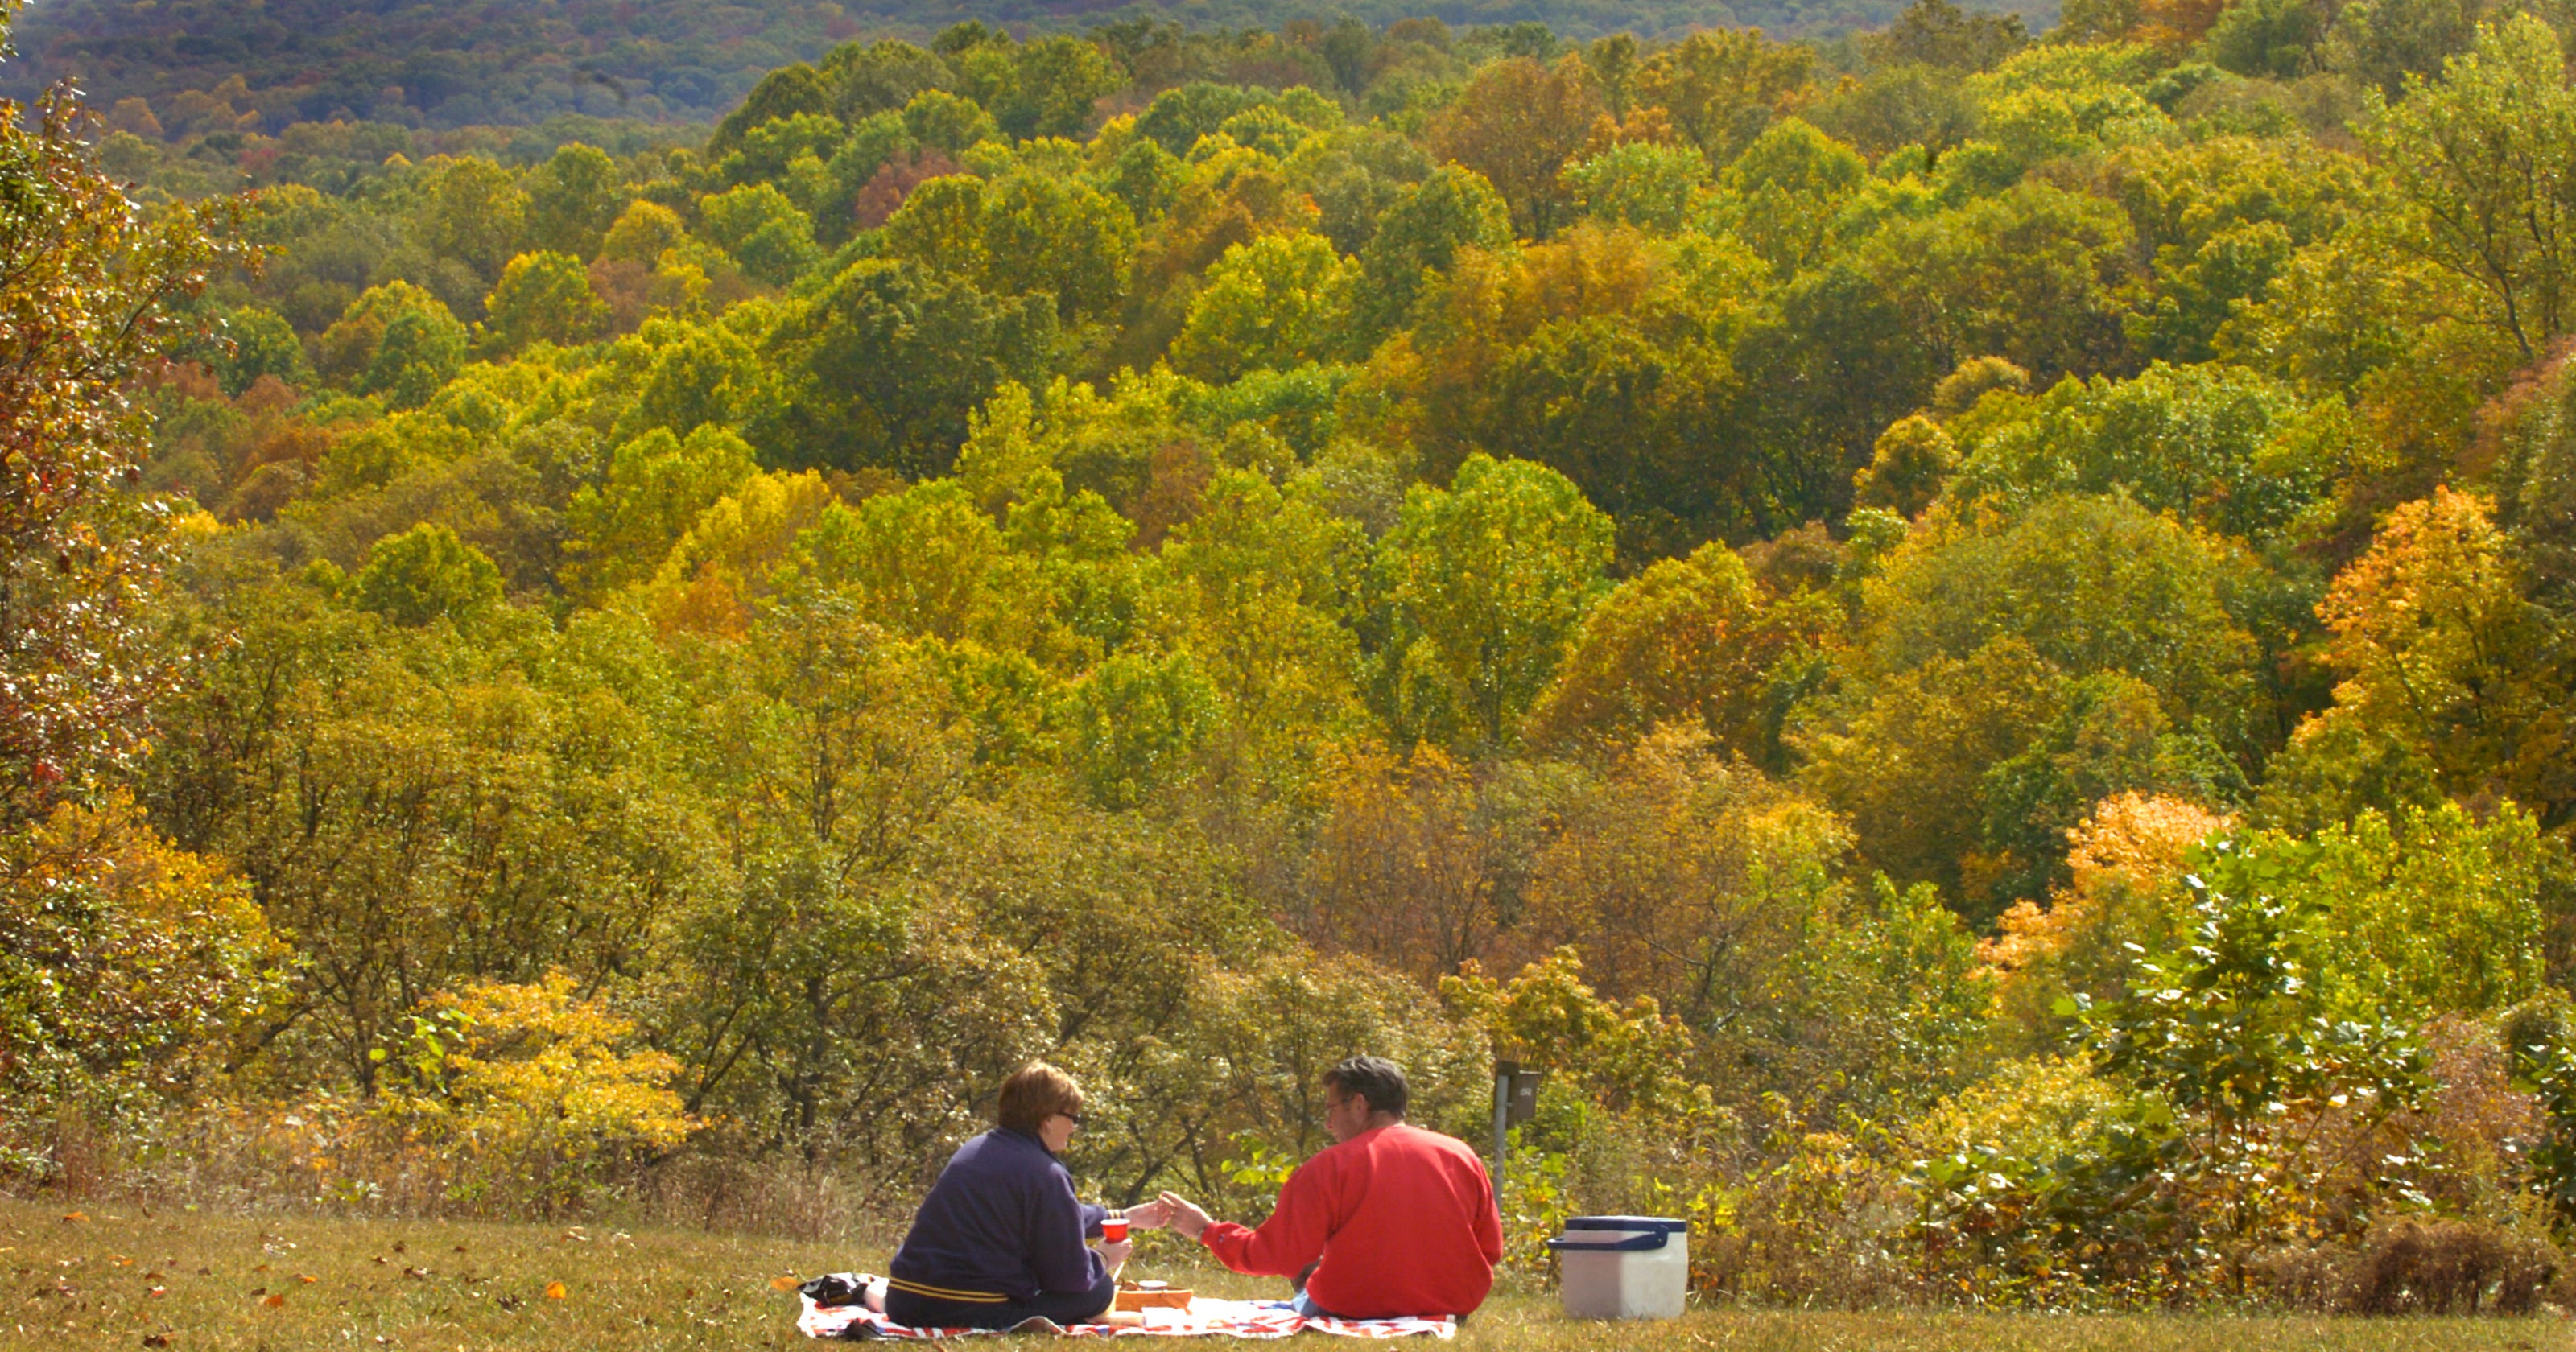 What are Indiana's top 5 state parks?